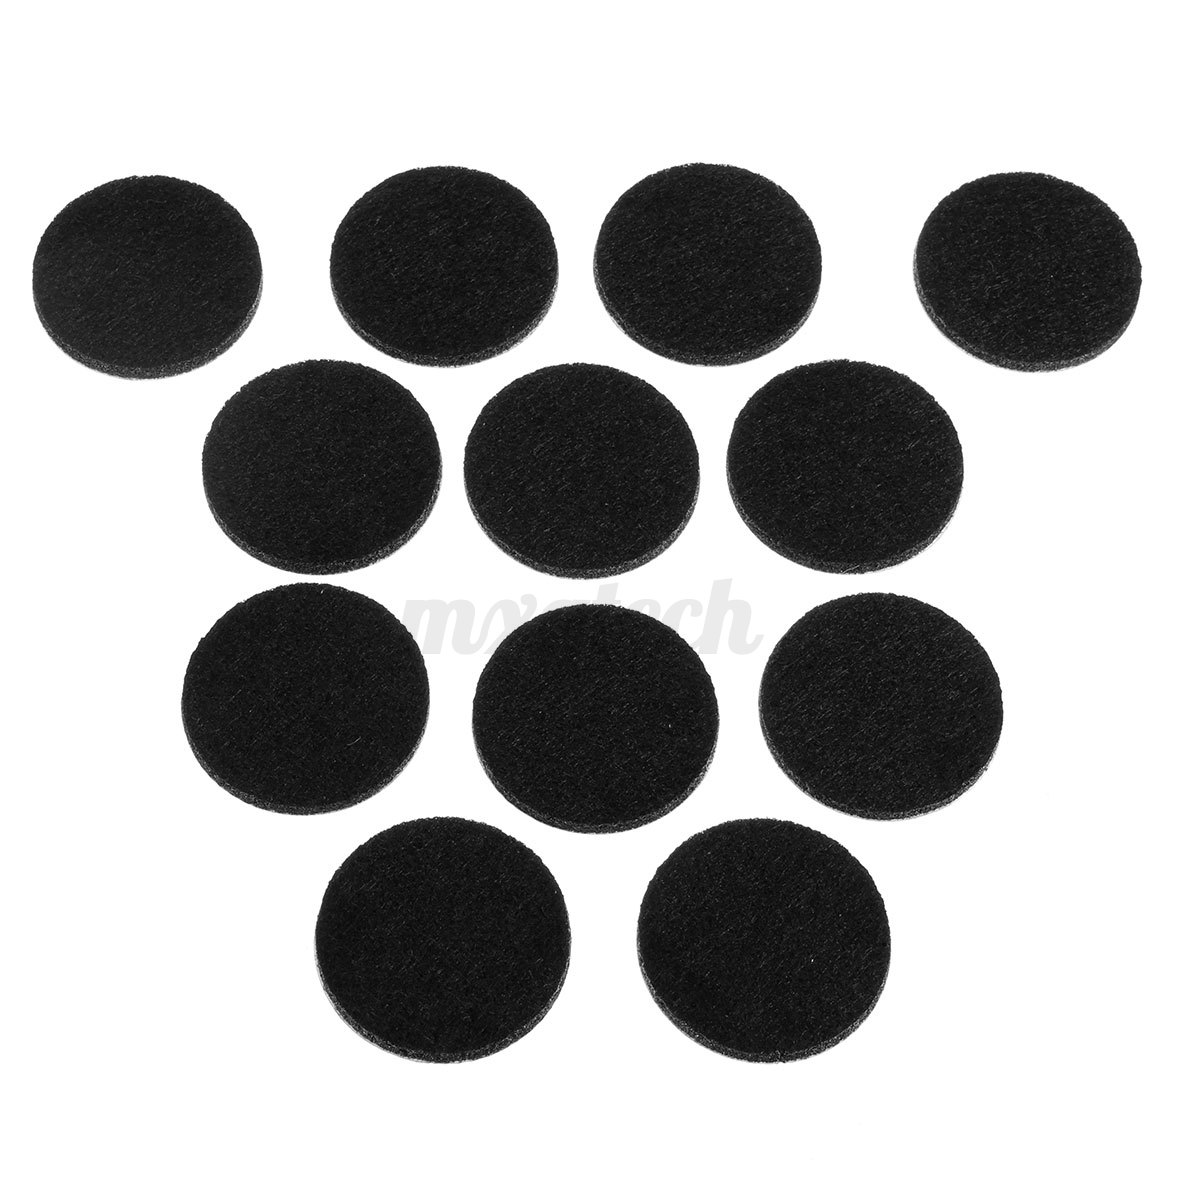 12Pcs Round Self Adhesive Furniture Felt Pads Protector